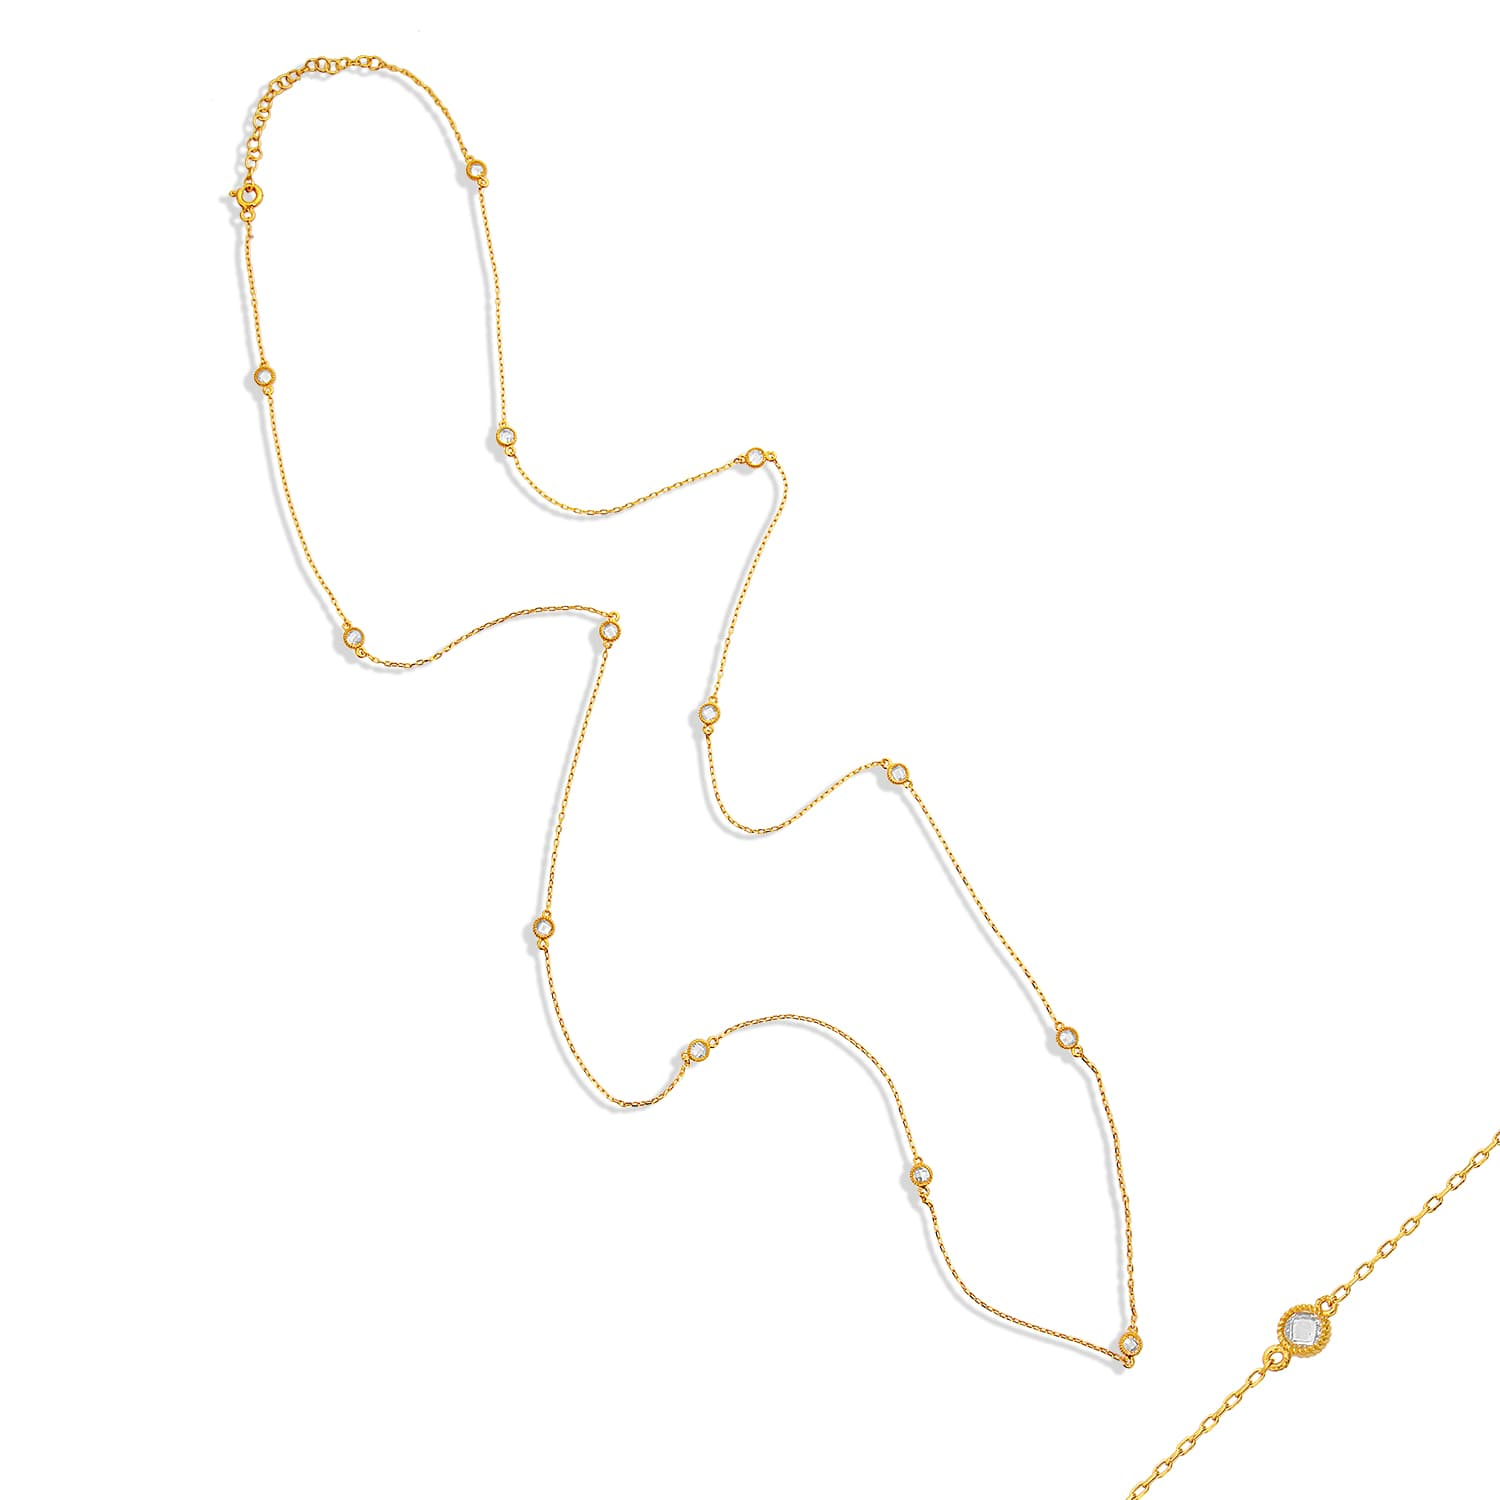 Real gold plated long chain models